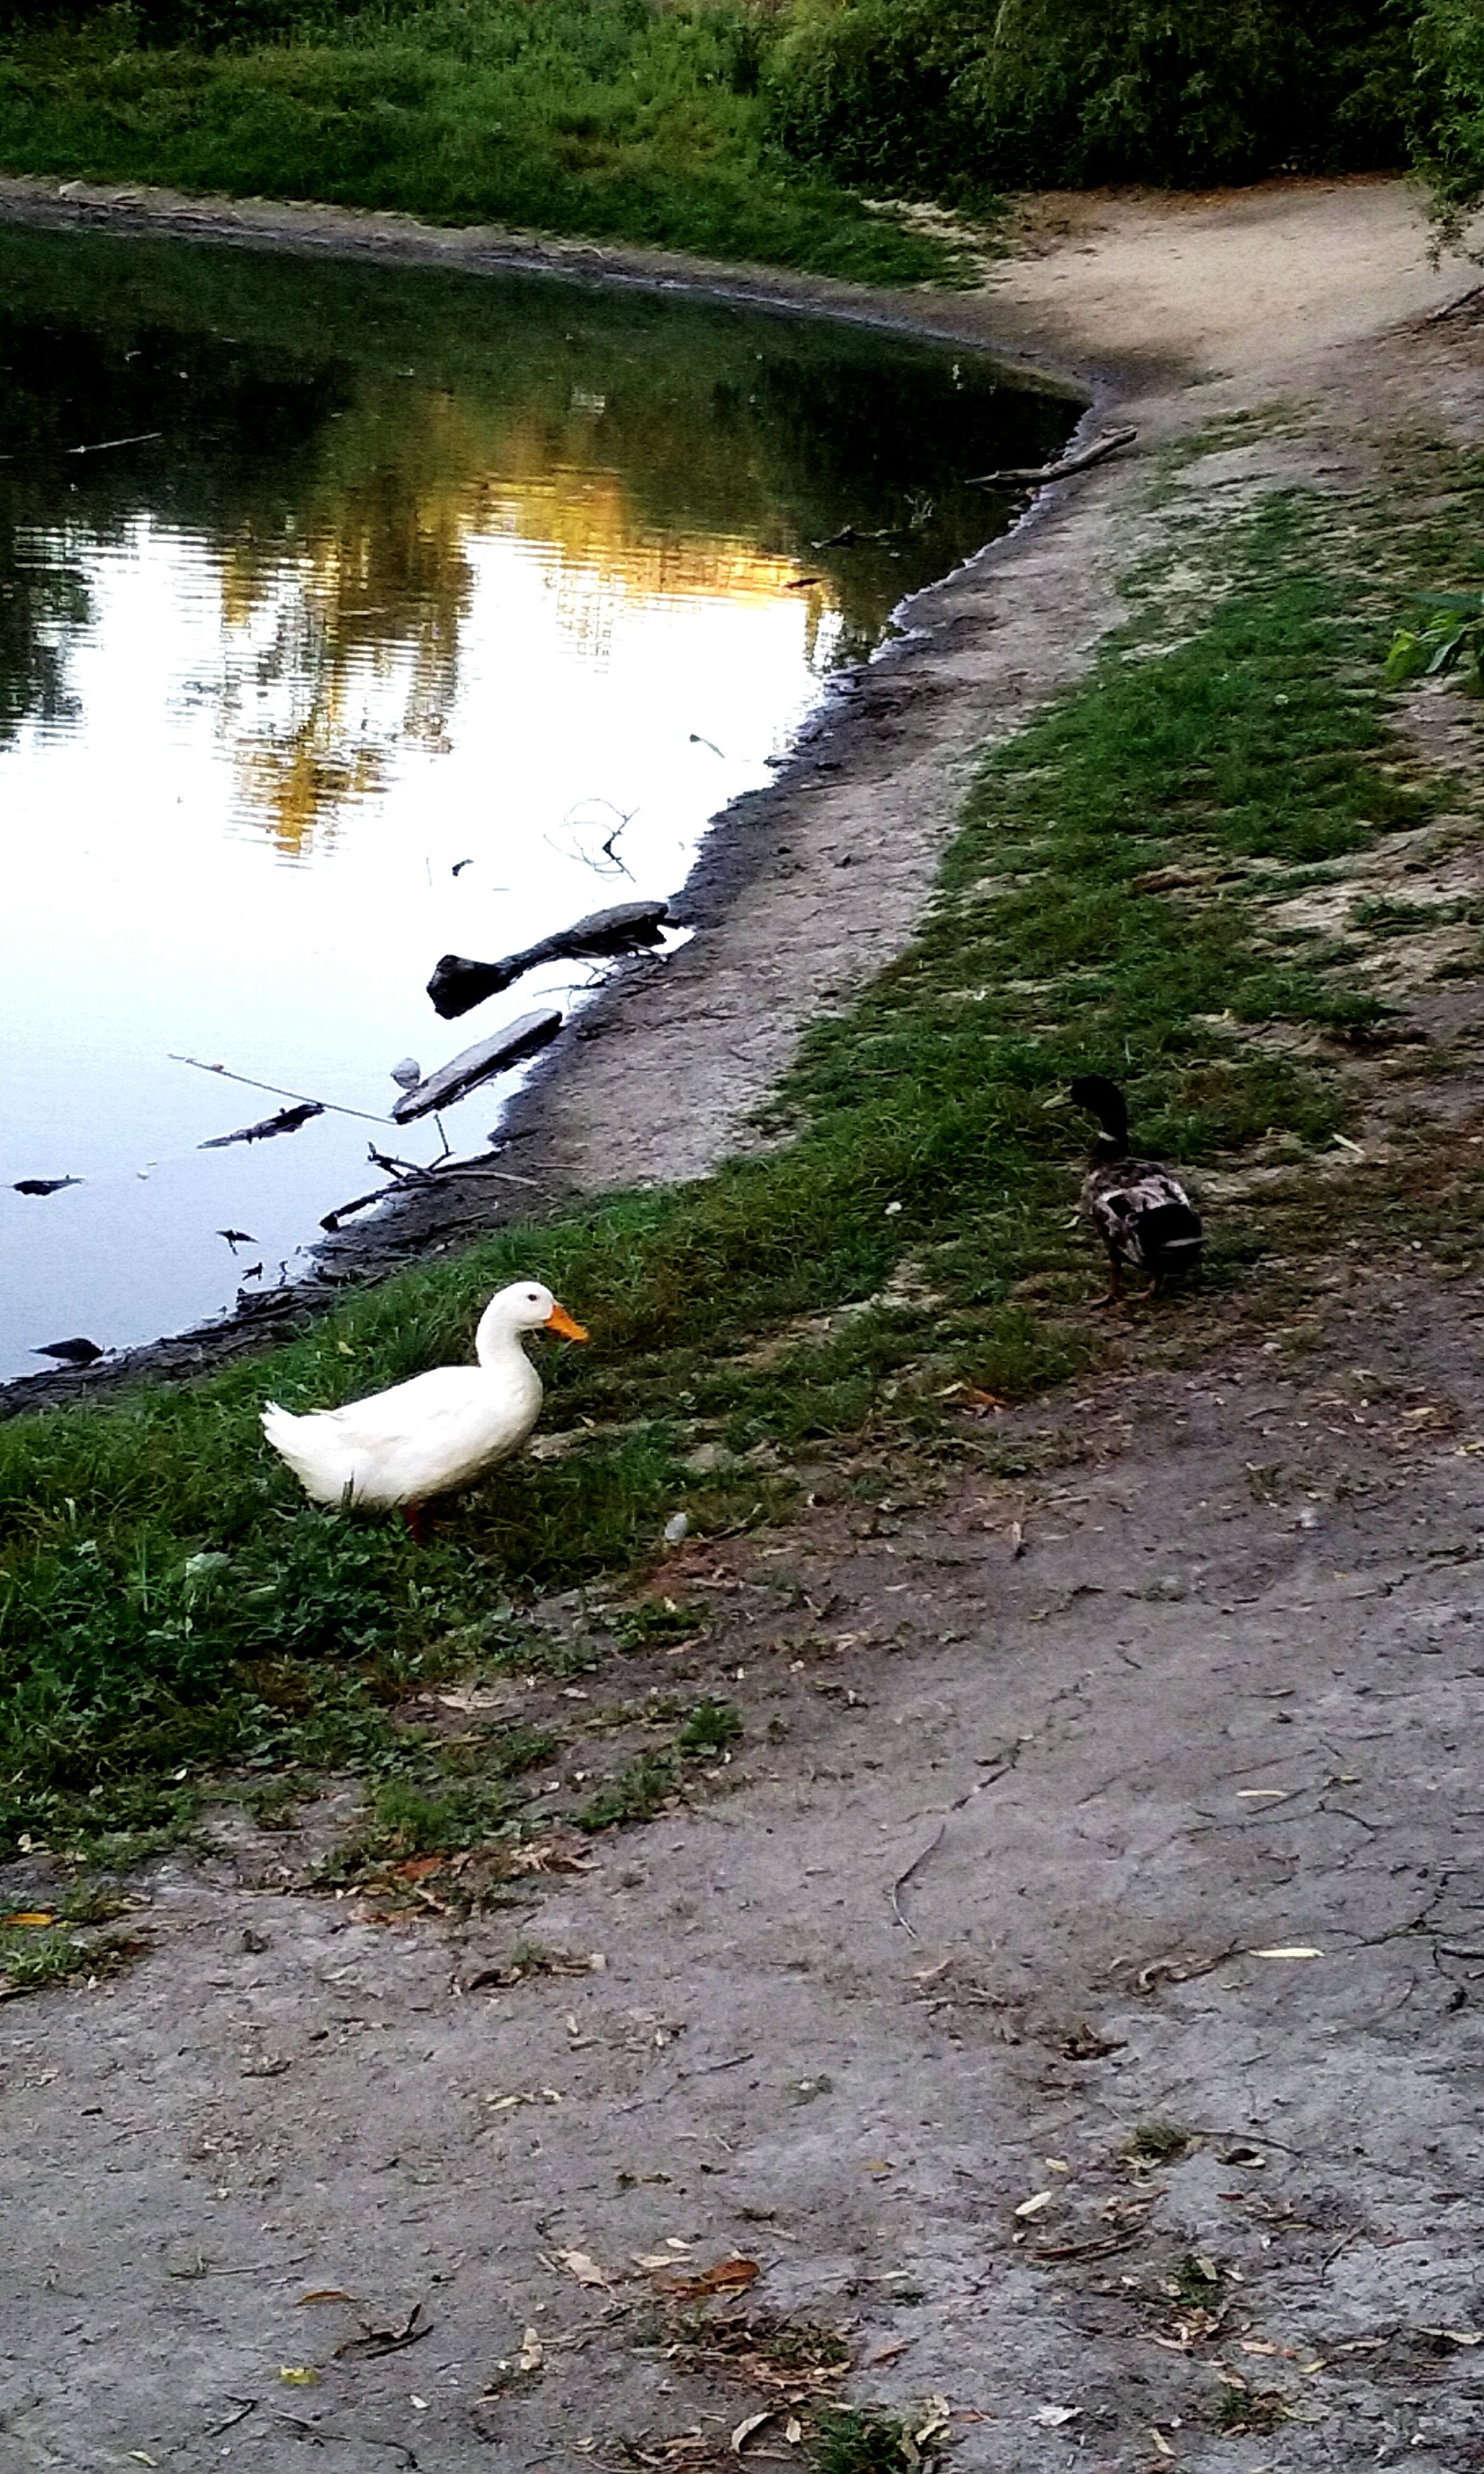 bird, animal themes, animals in the wild, wildlife, lake, water, grass, swan, duck, white color, nature, reflection, lakeshore, water bird, high angle view, day, tranquility, beauty in nature, outdoors, field